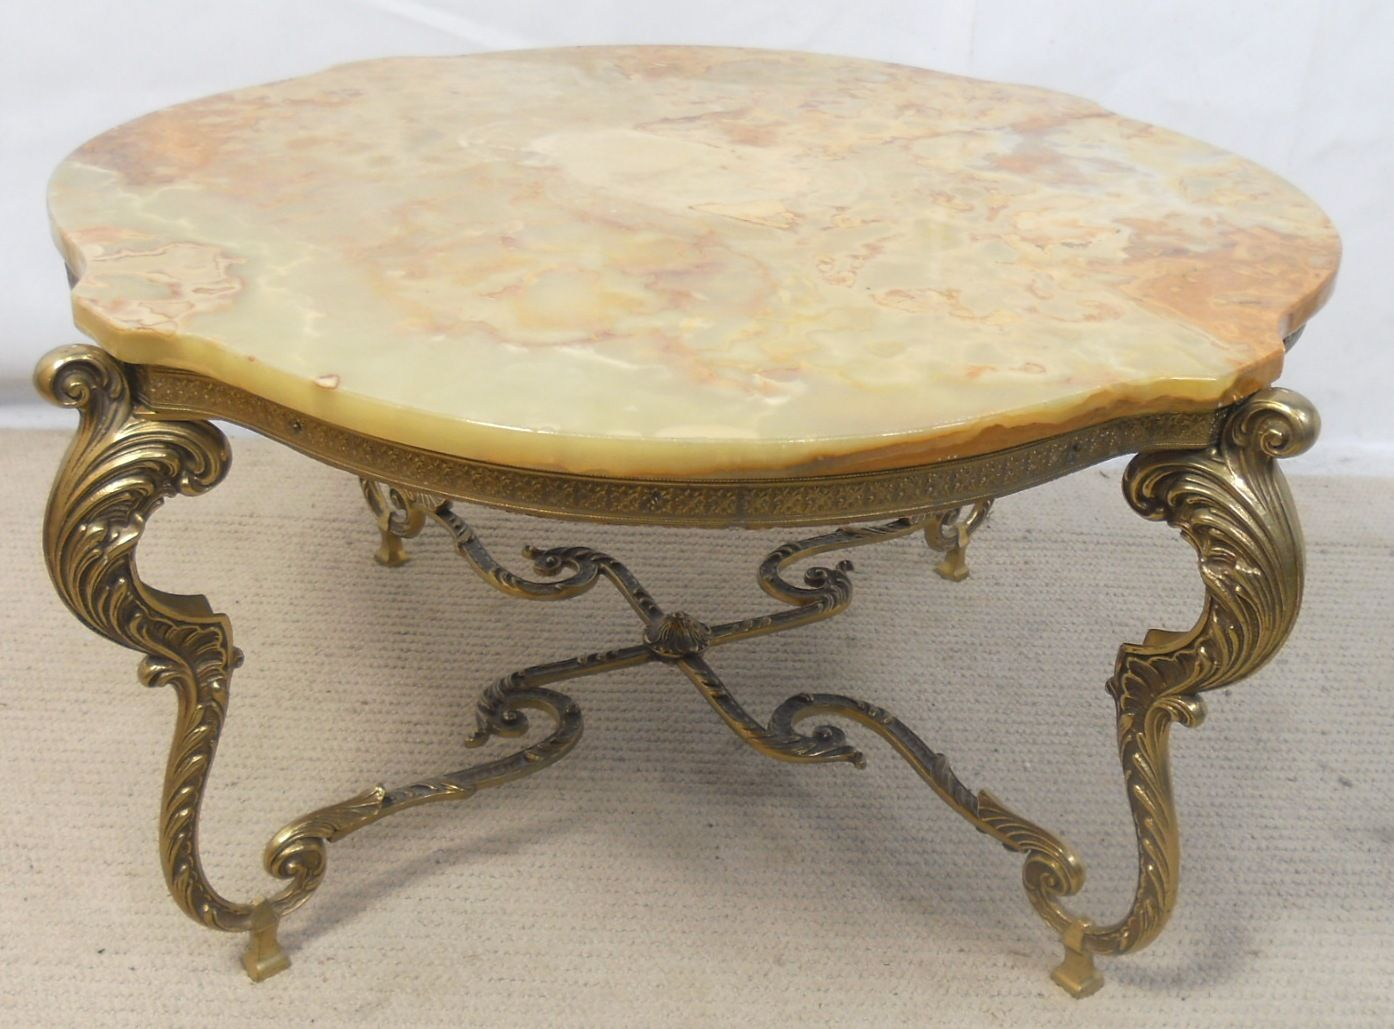 Chair antique chairs uk antique desk chairs antique dining - Onyx Marble Top Ornate Brass Base Coffee Table Sold